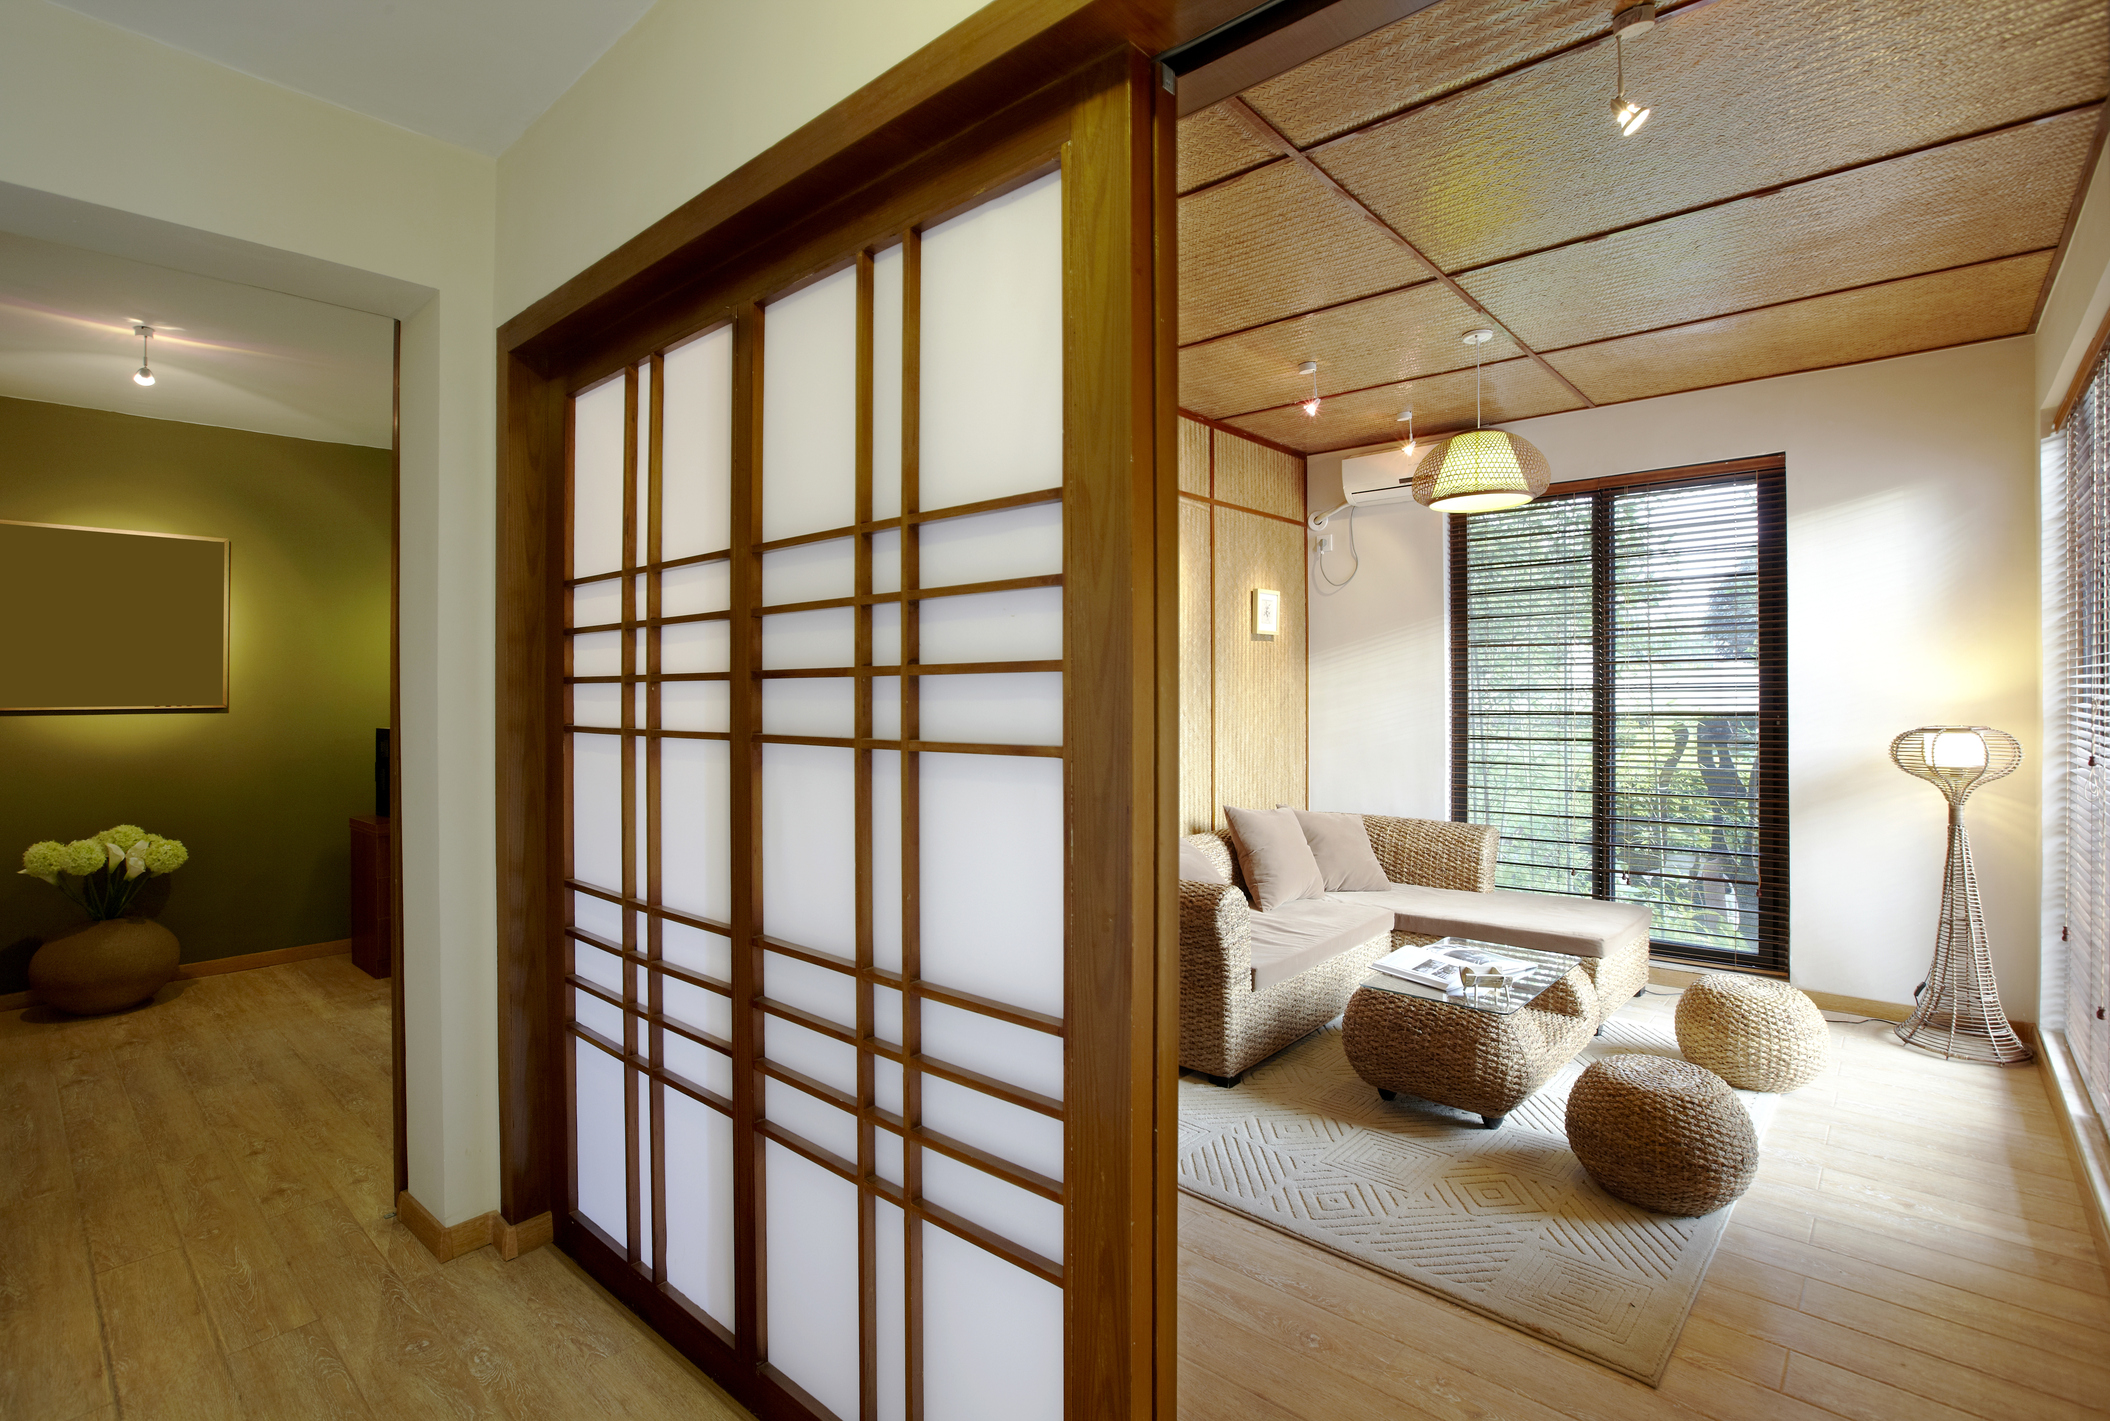 Beauteous 80 japanese style interior design design ideas for Japanese interior design